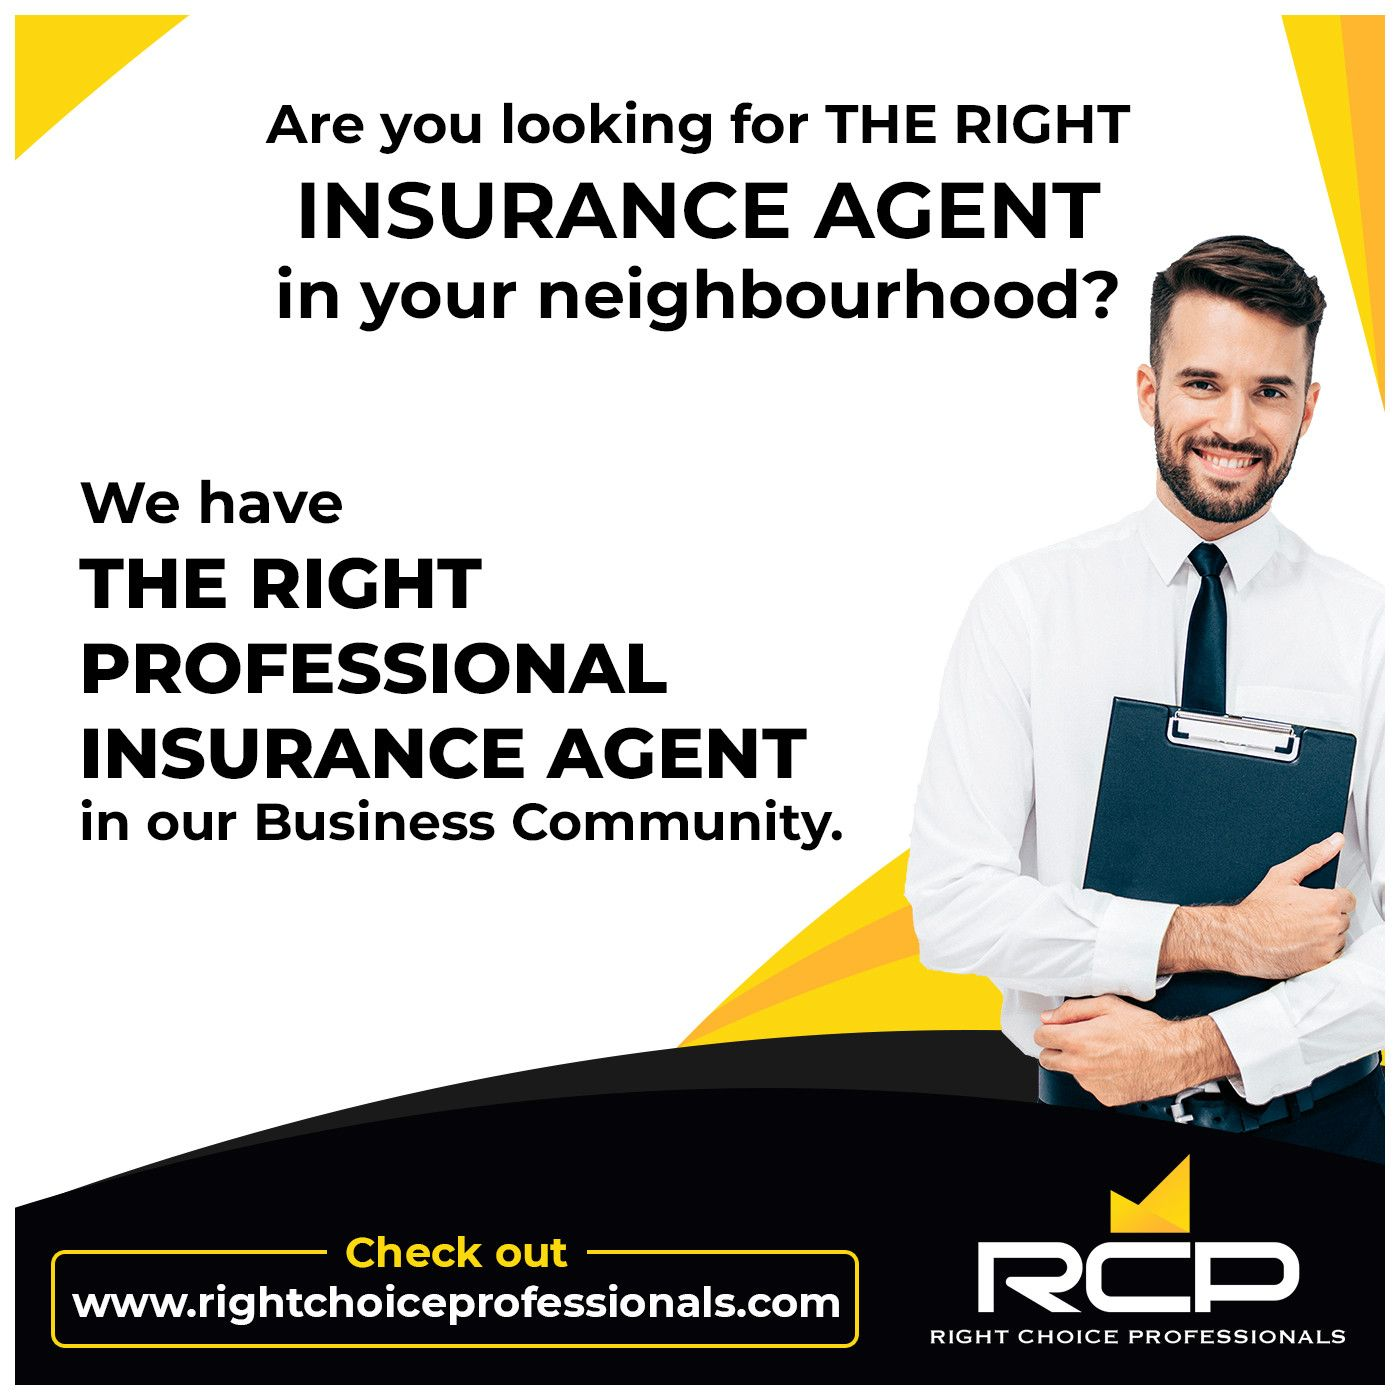 Are You Looking For The Right Insurance Agent In Your Neighborhood